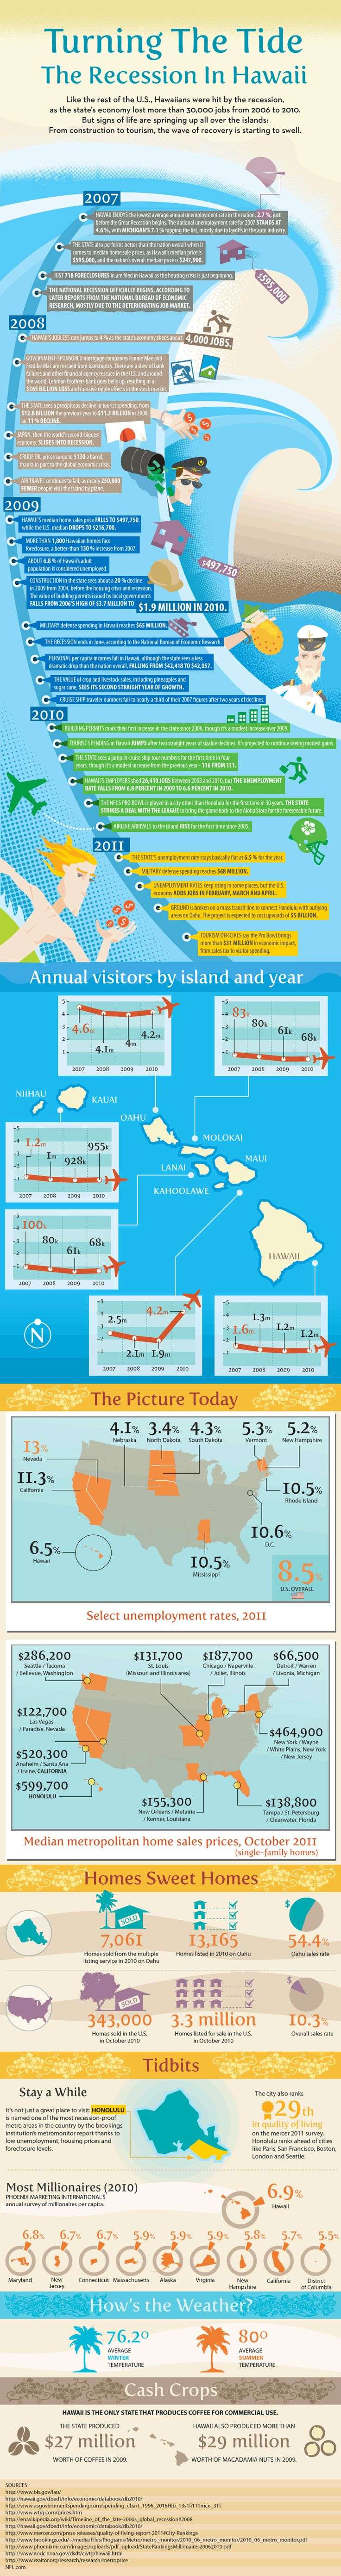 """Turning the Tide: The Recession in Hawaii"" - An infographic by Tony @AlohaTony Kawaguchi."